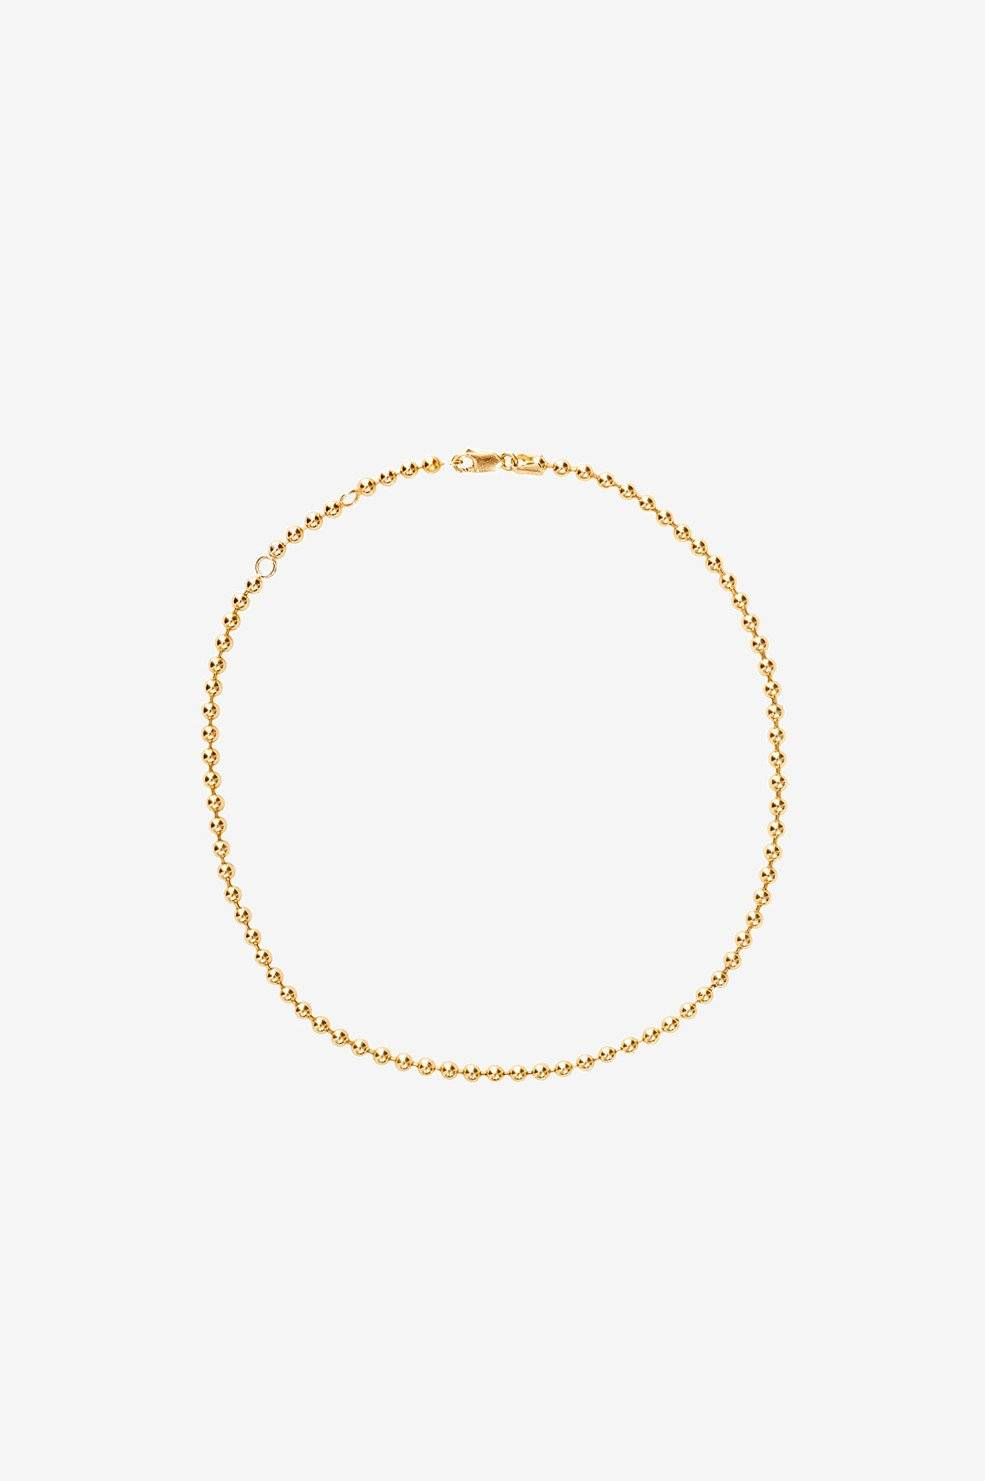 ANINE BING 14k Yellow Gold Beaded Necklace  - 14k Yellow Gold - Size: One Size